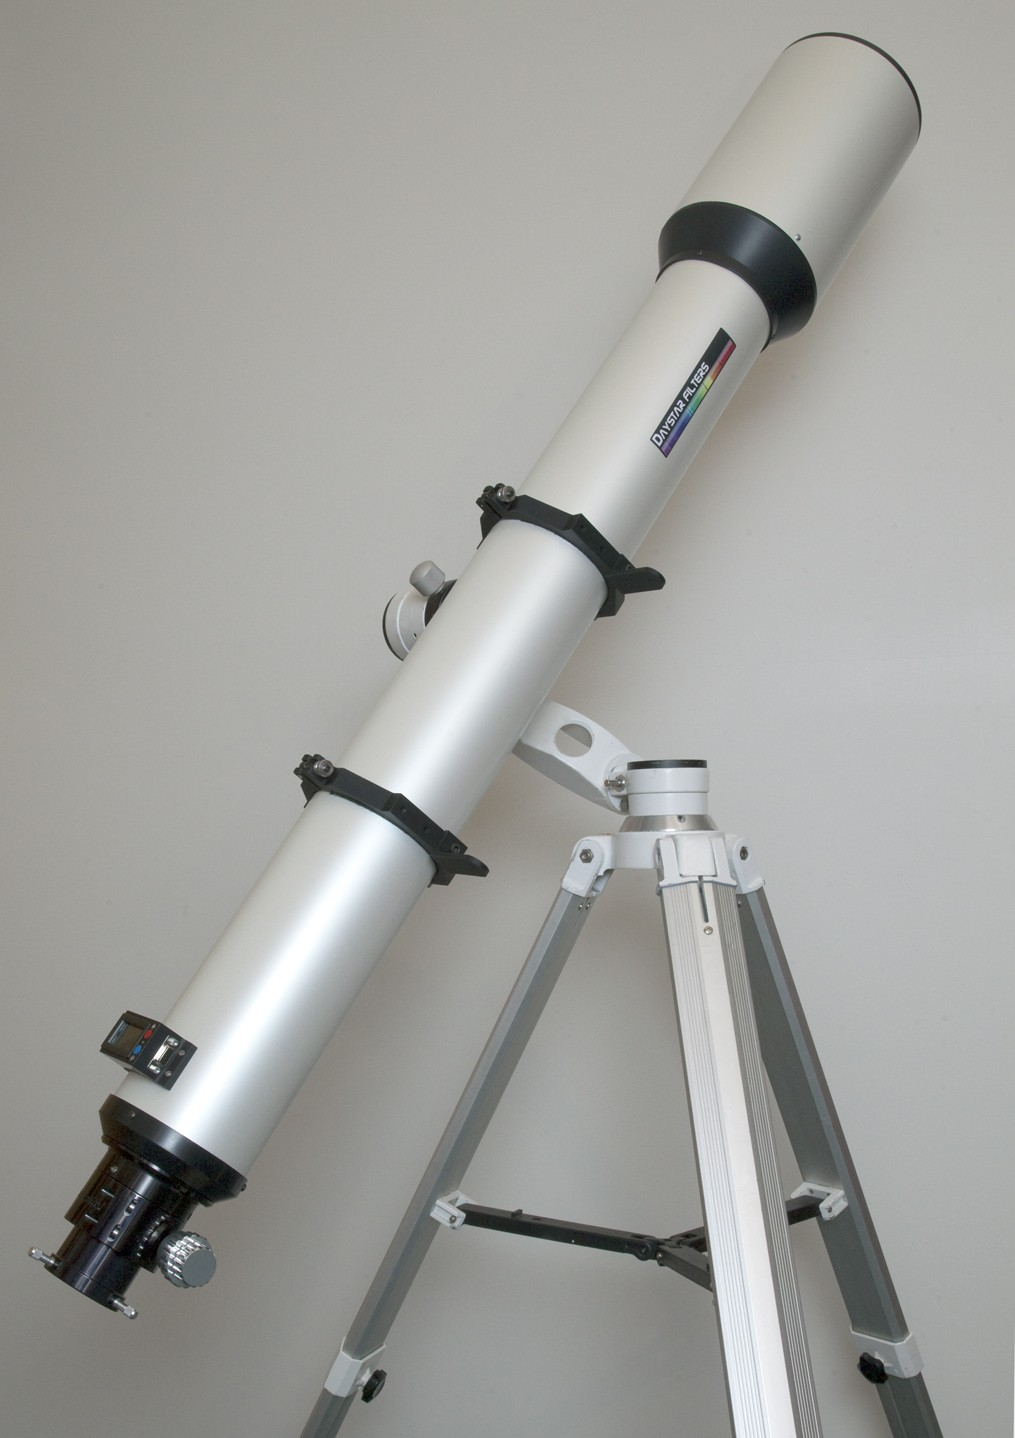 SR 127mm Dedicated Solar Telescope 0.6Å SE Grade